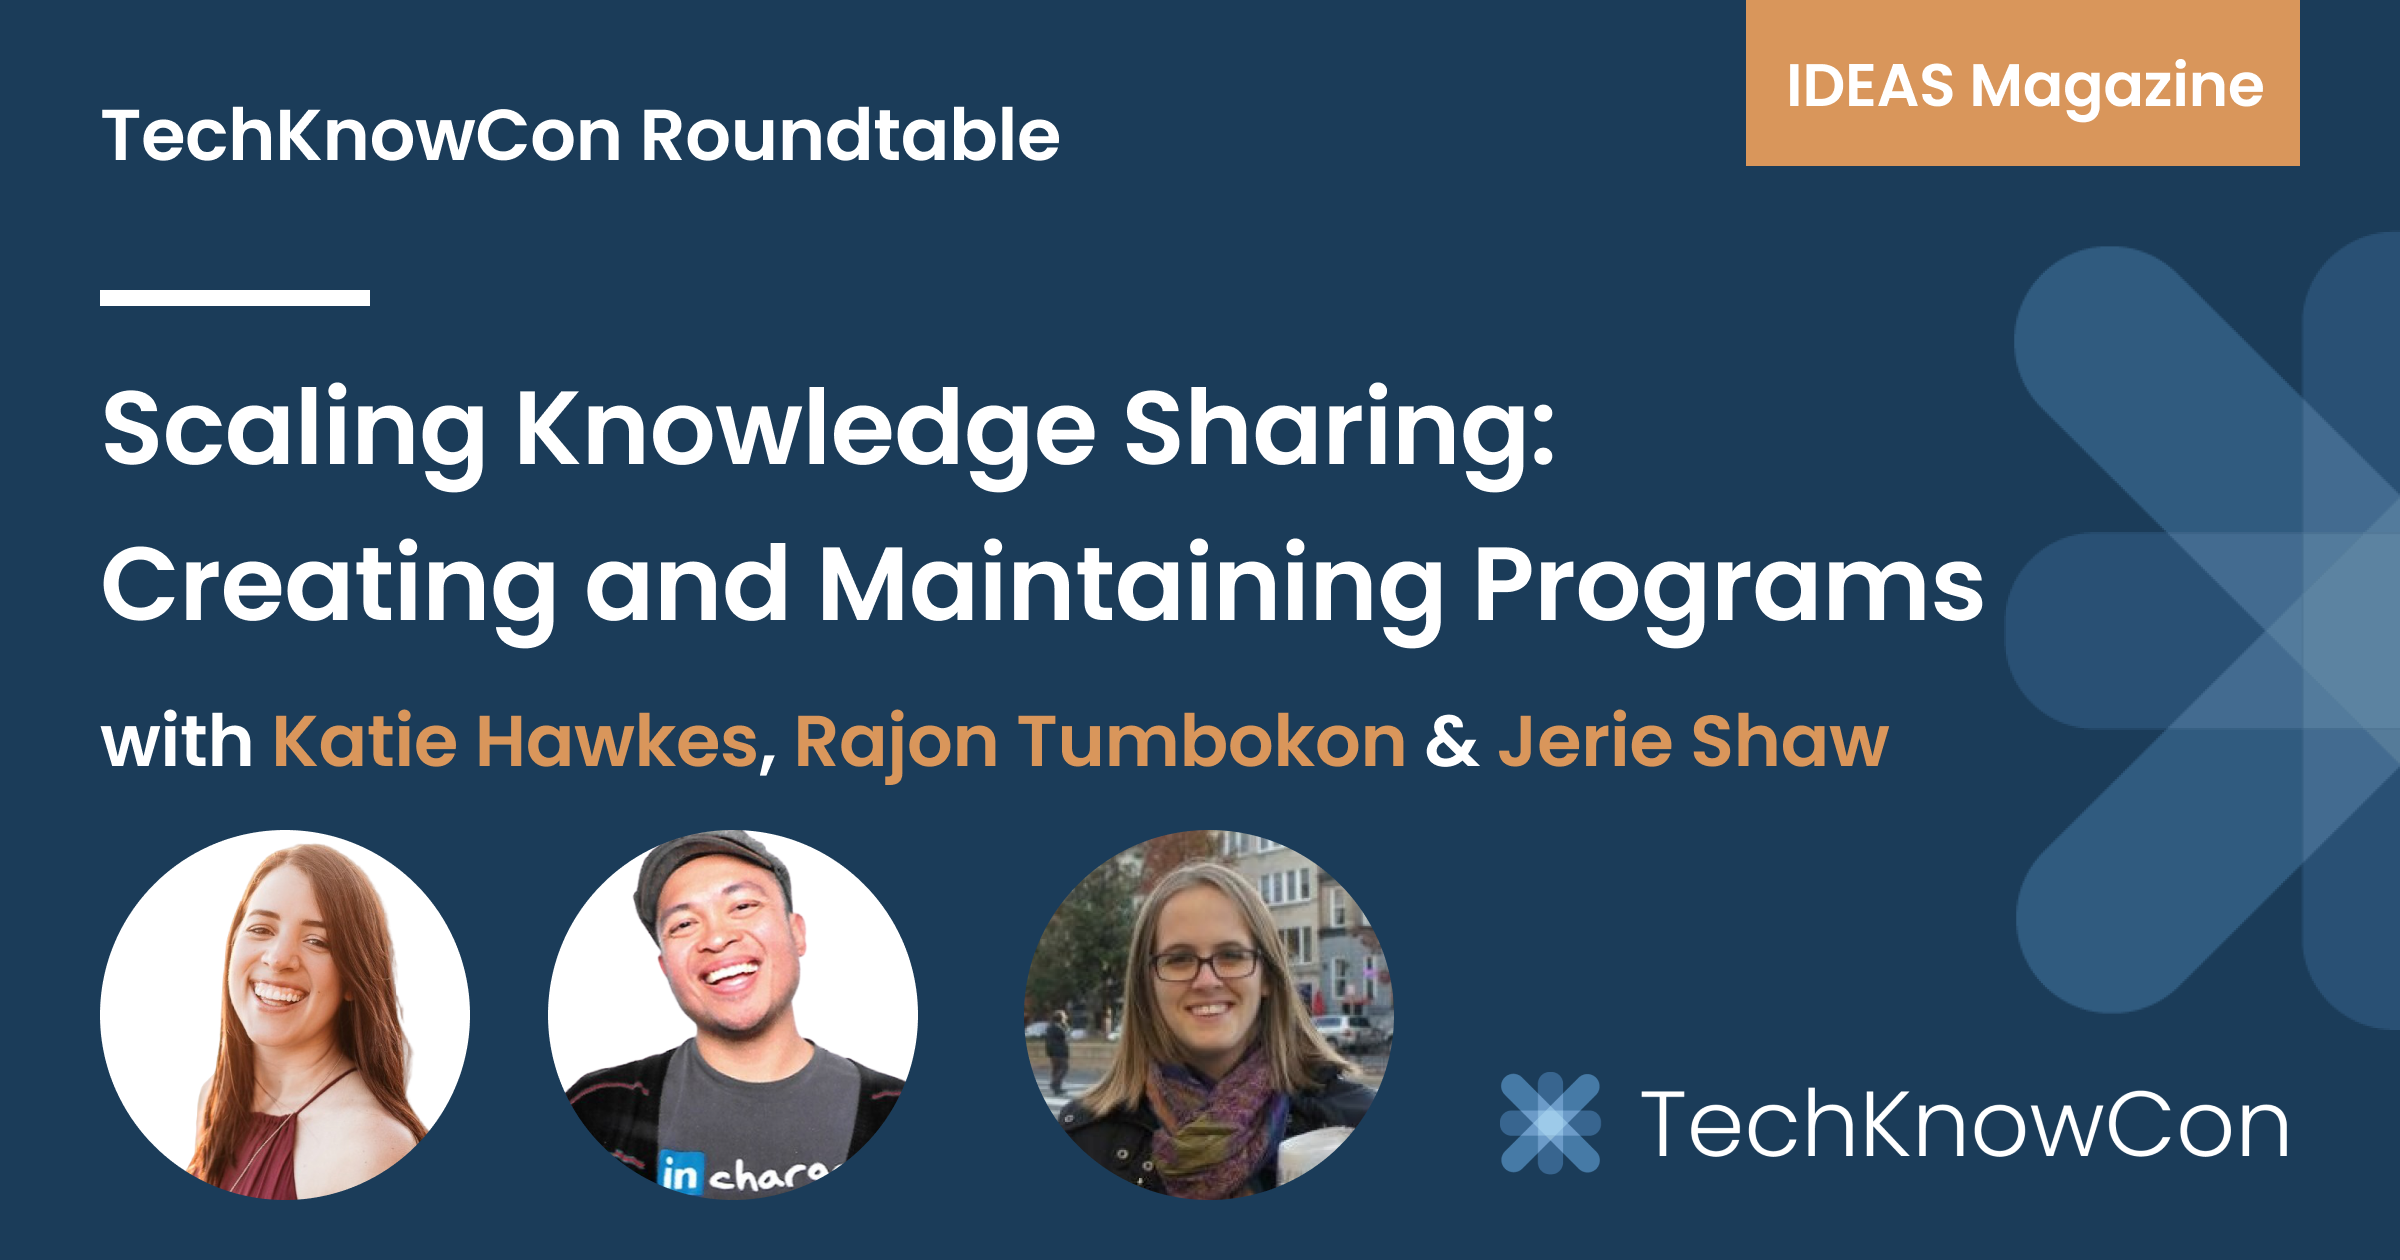 Scaling Knowledge Sharing: Creating and Maintaining Programs